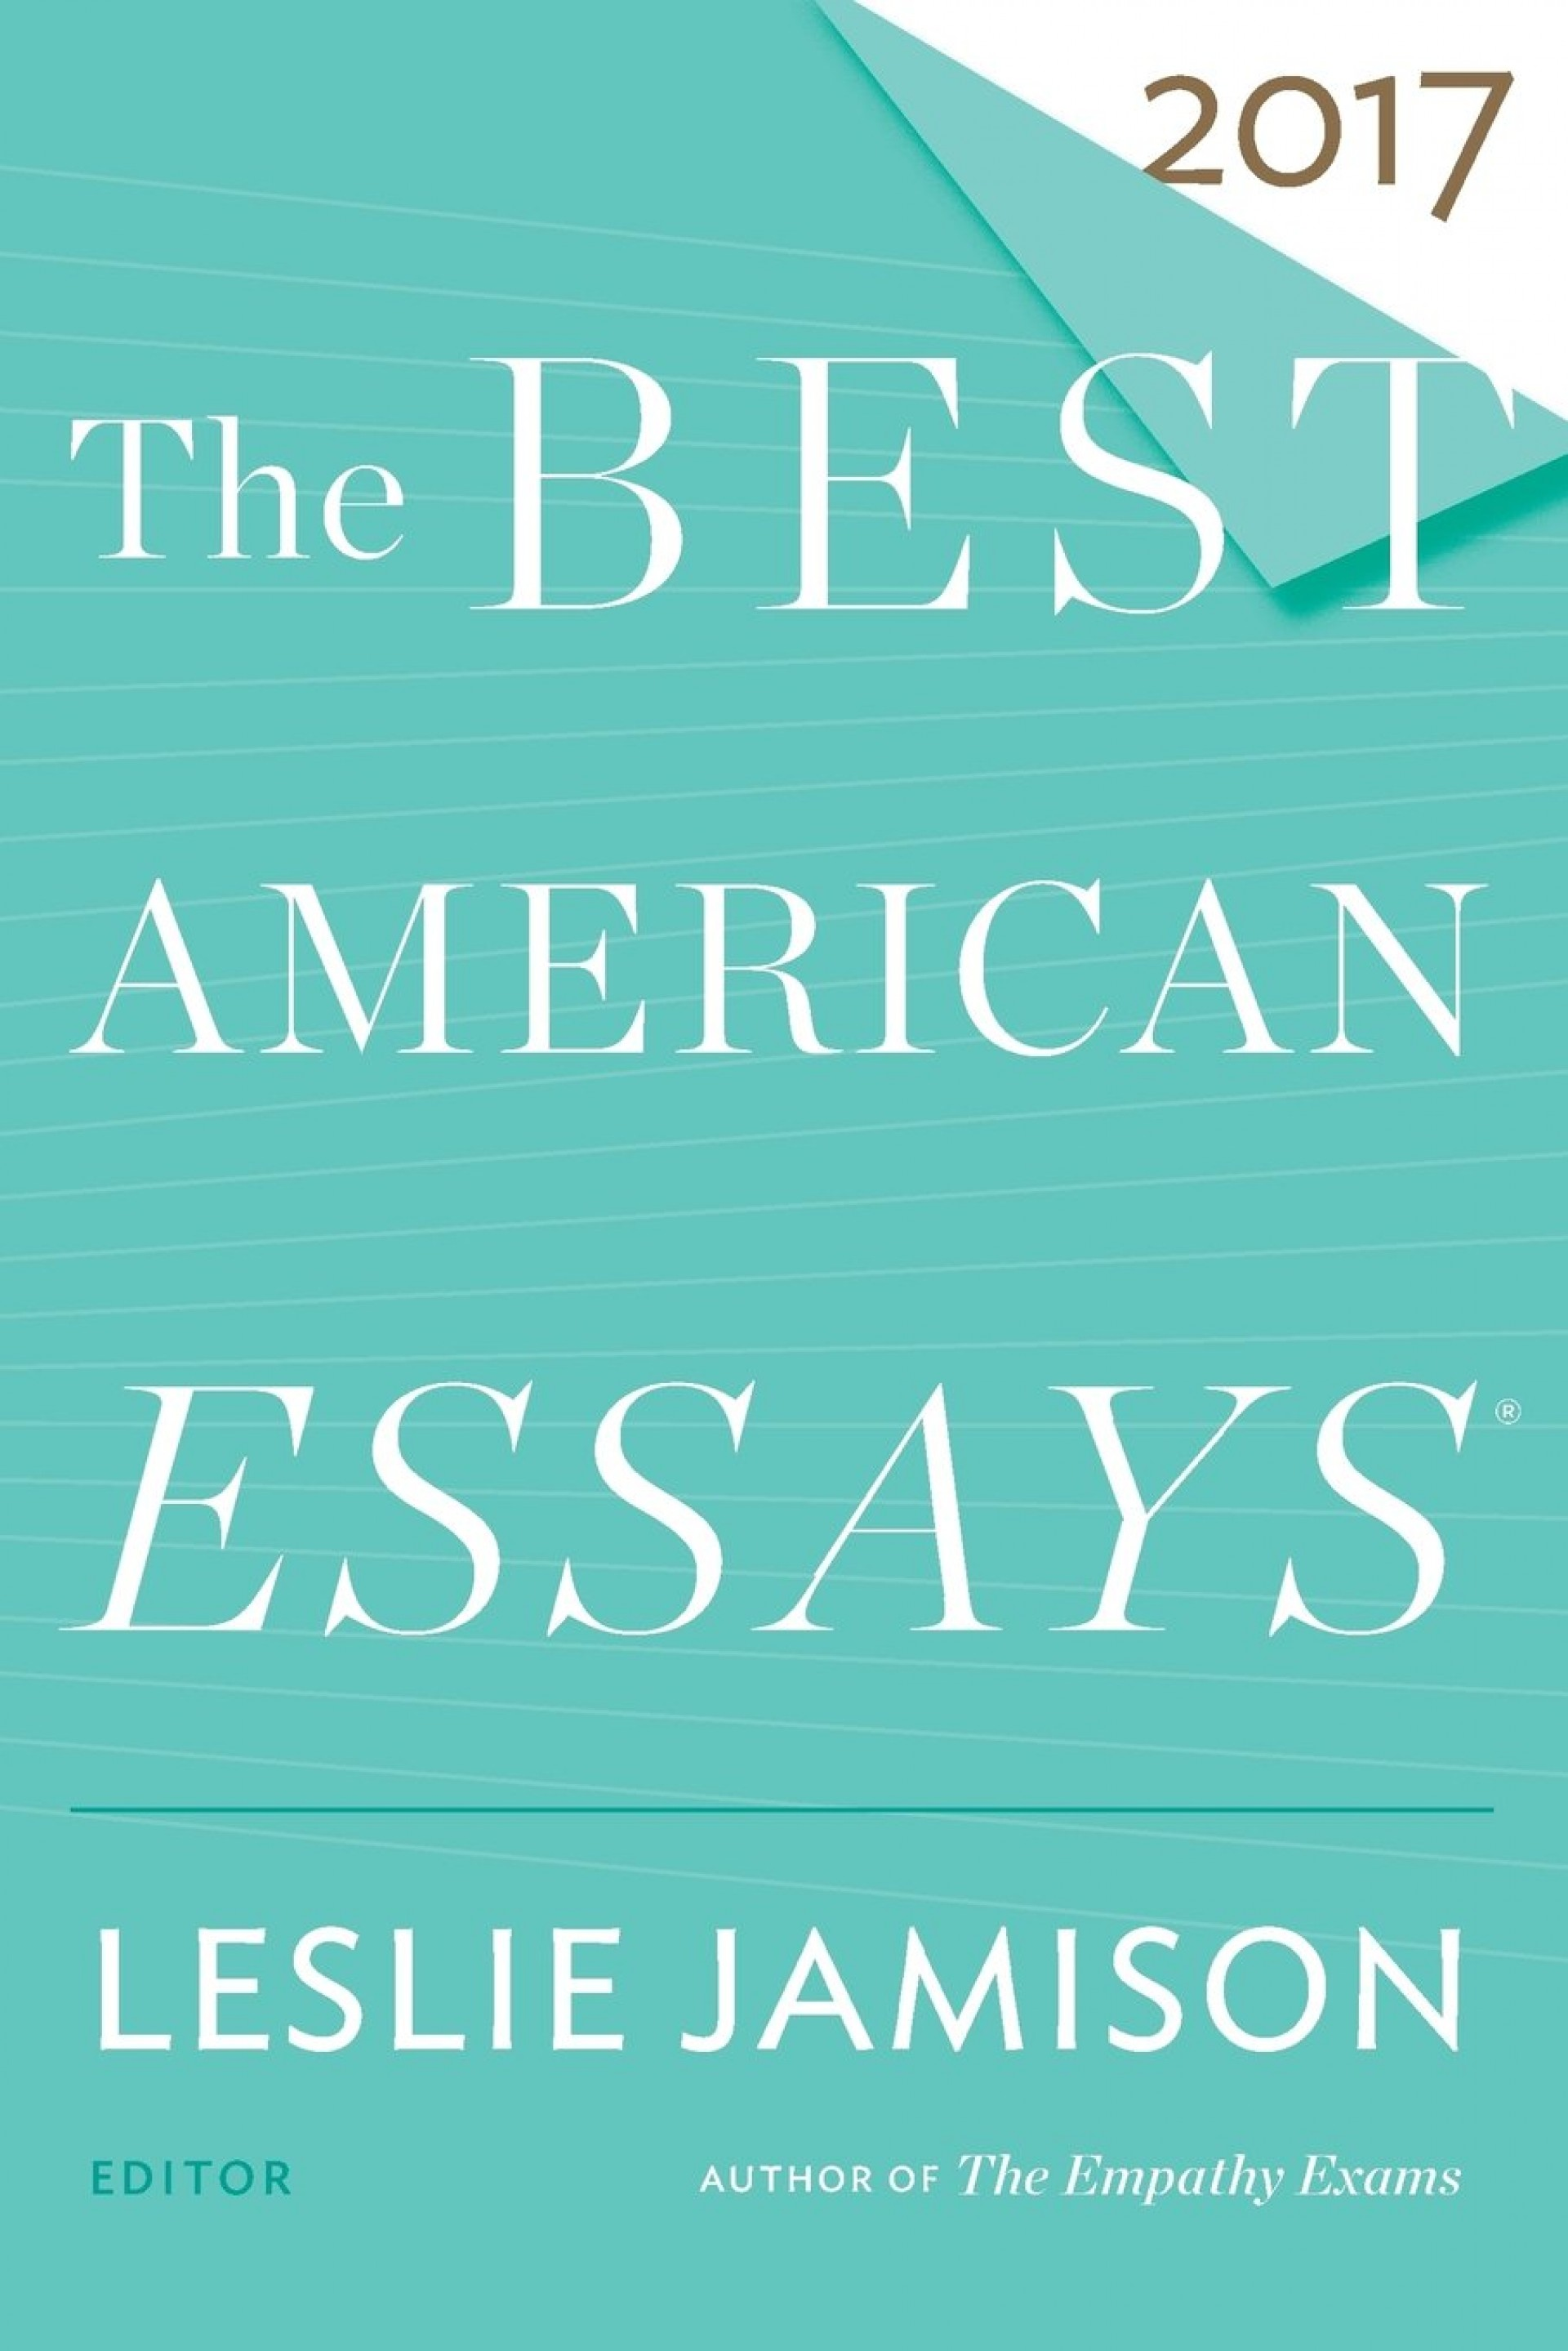 002 Essay Example 61tzl Nruvl The Best American Essays Phenomenal 2016 Pdf Download Audiobook Sparknotes 1920